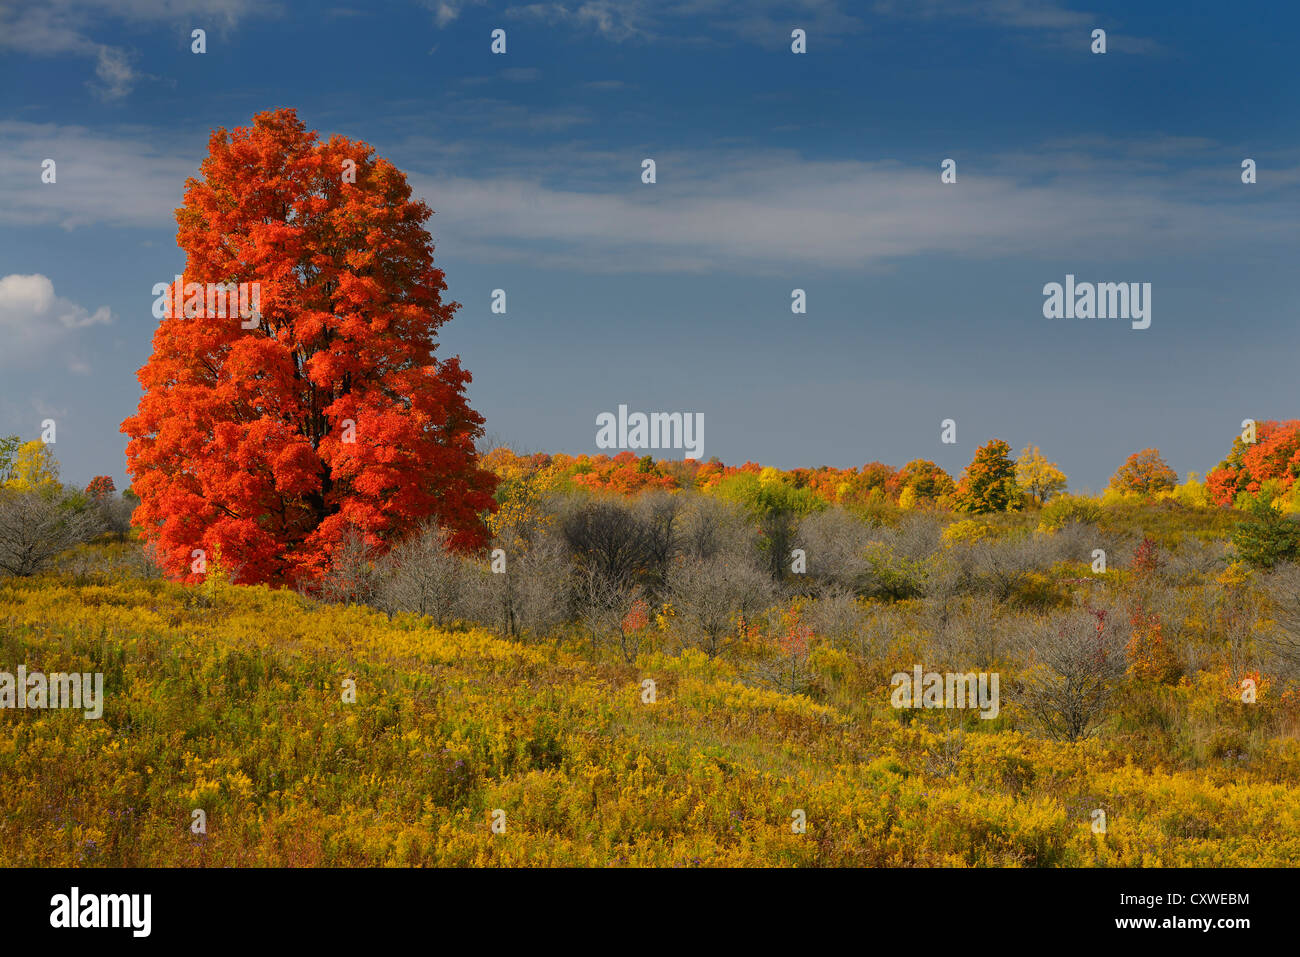 single-bright-red-maple-tree-in-a-field-